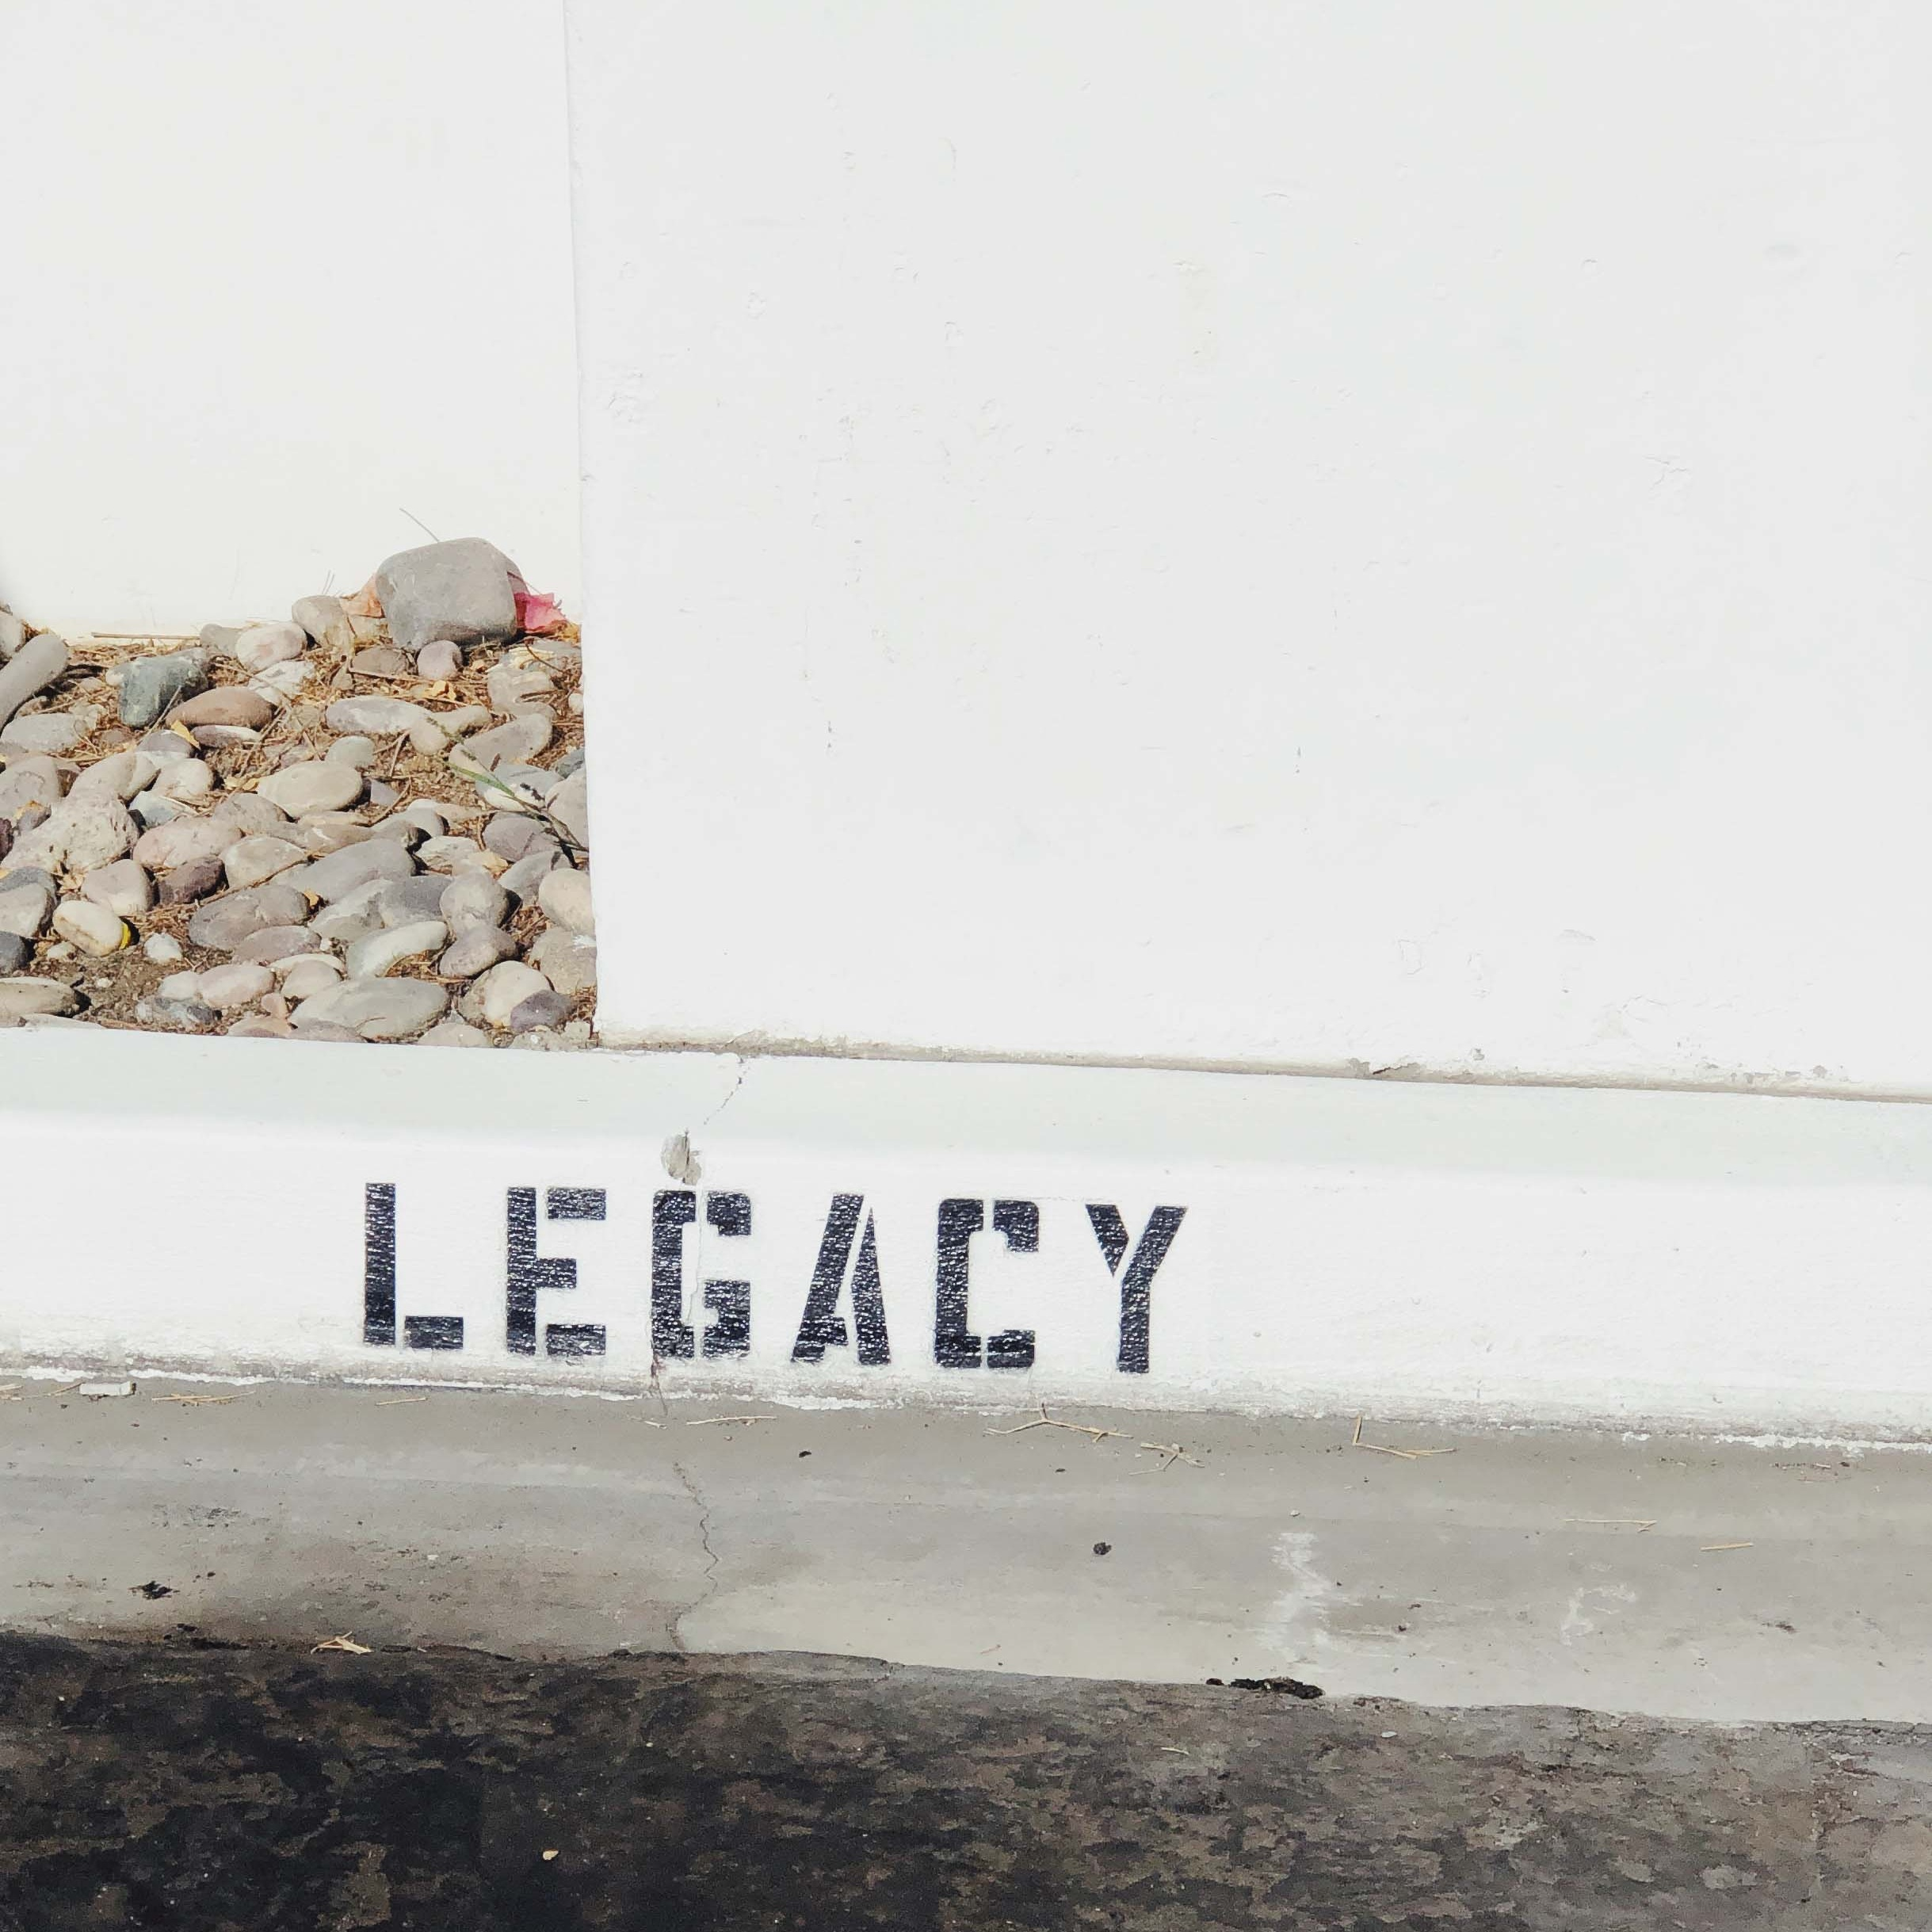 LEAVE A LEGACY - Perhaps you are not yet ready to make a philanthropic contribution, but understand the importance of giving.You can bequest monies, property, or a percentage of your estate in order to establish a fund with International Mission of Mercy, USA after your passing. Doing so will ensure a long-lasting impact of YOUR GENEROSITY in helping the helpless around the world, by Creating Hope in Times of Need.